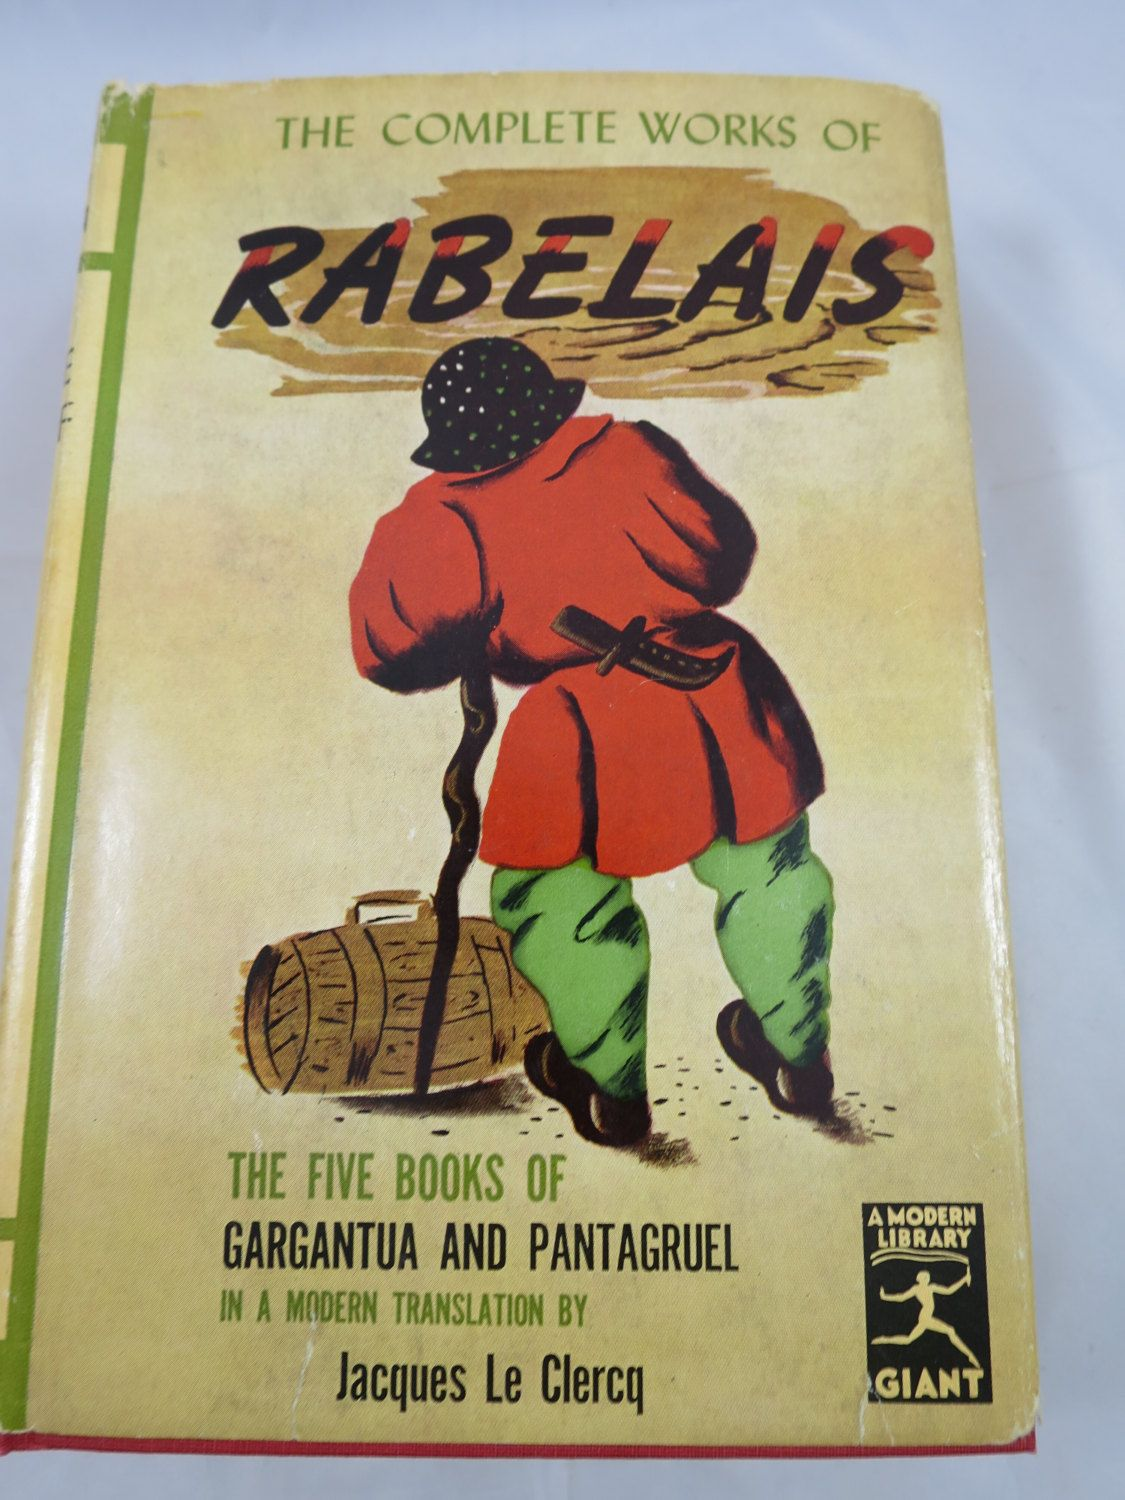 Vintage Rabelais Book Complete Works Modern Library Edition 65th Giant Title Gargantua Pantagruel French Translation By Le Clerq Modern Library Books It Works